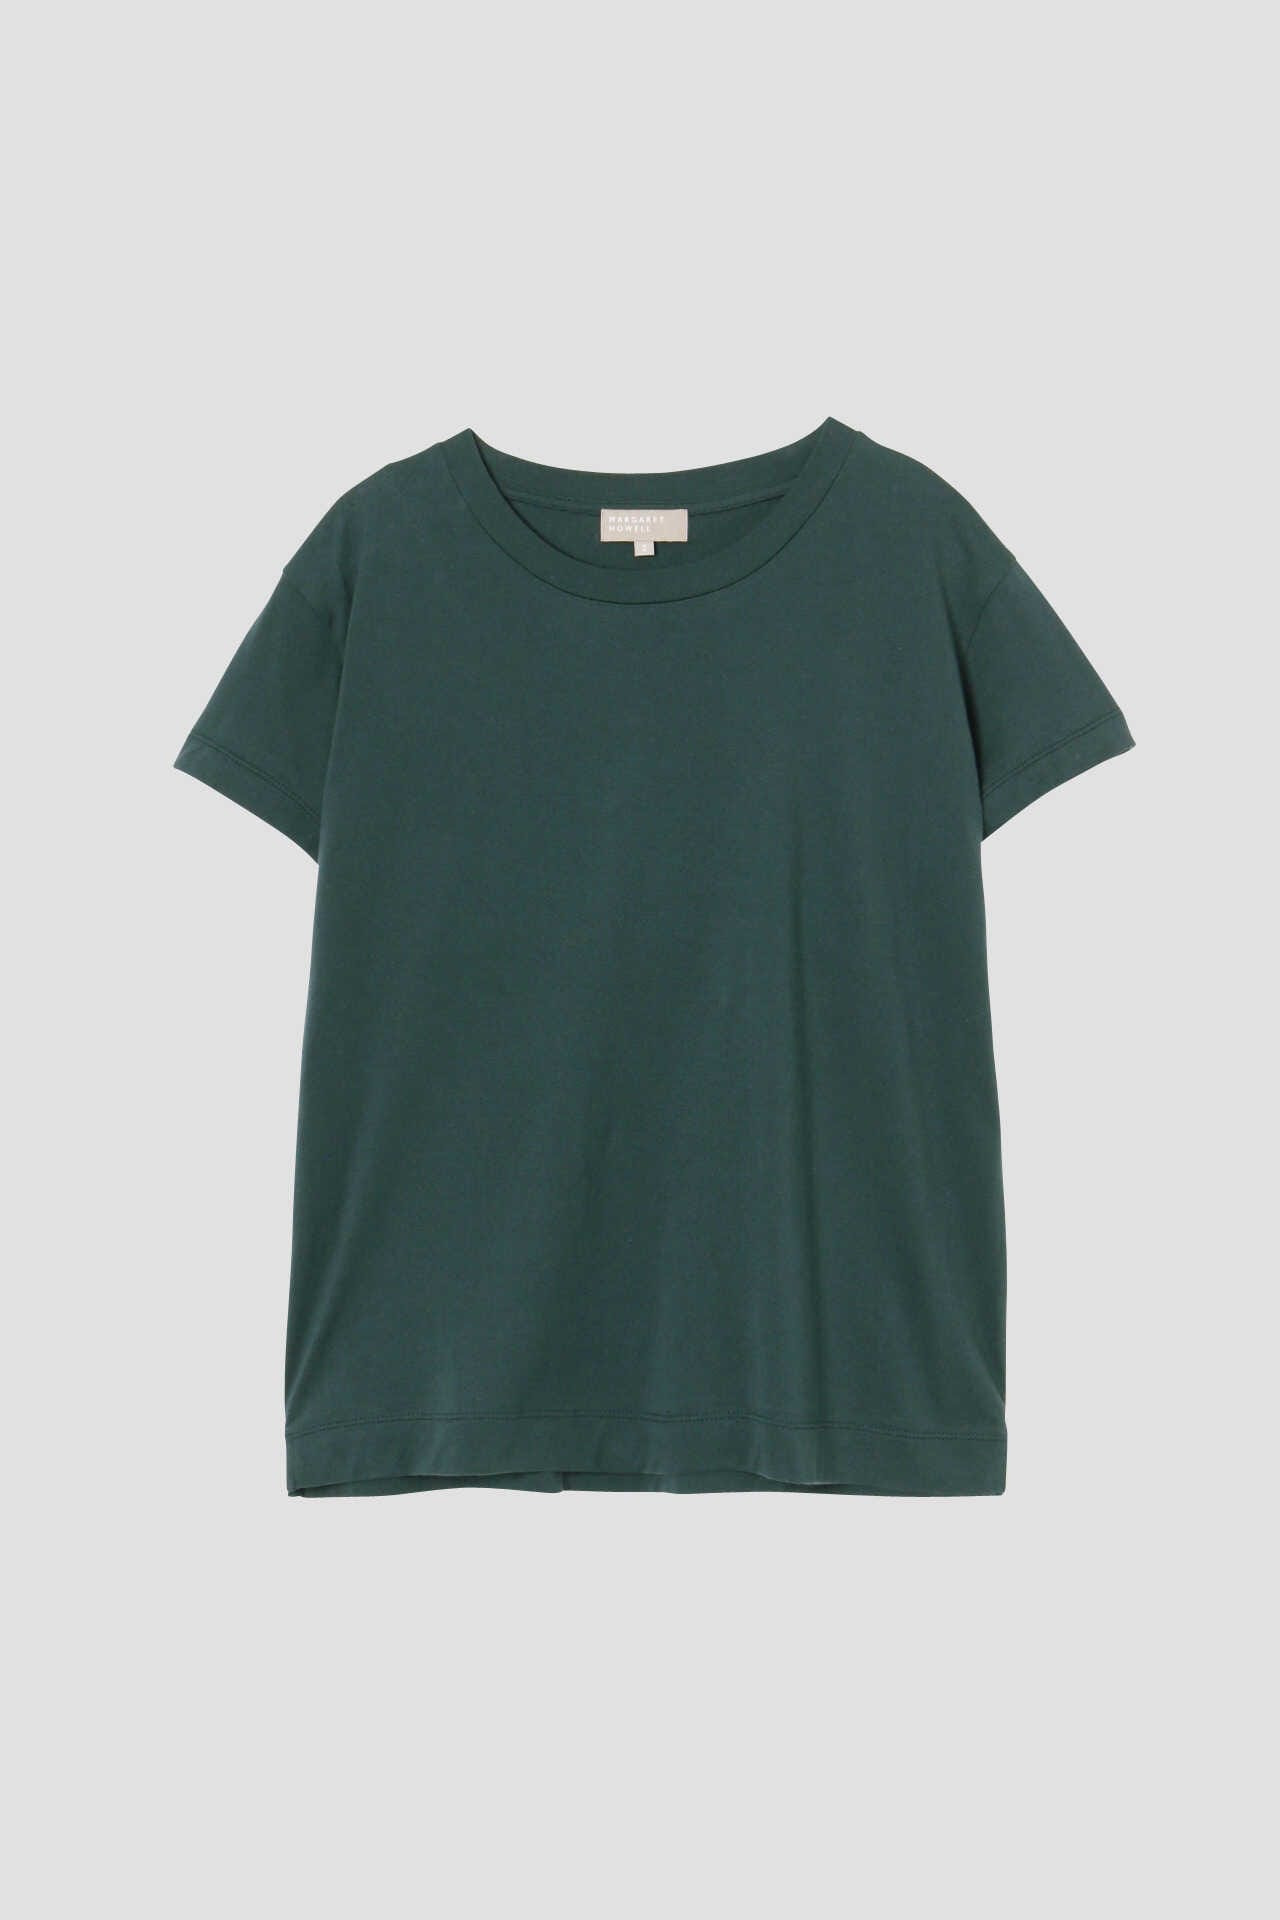 PLAIN COTTON JERSEY9